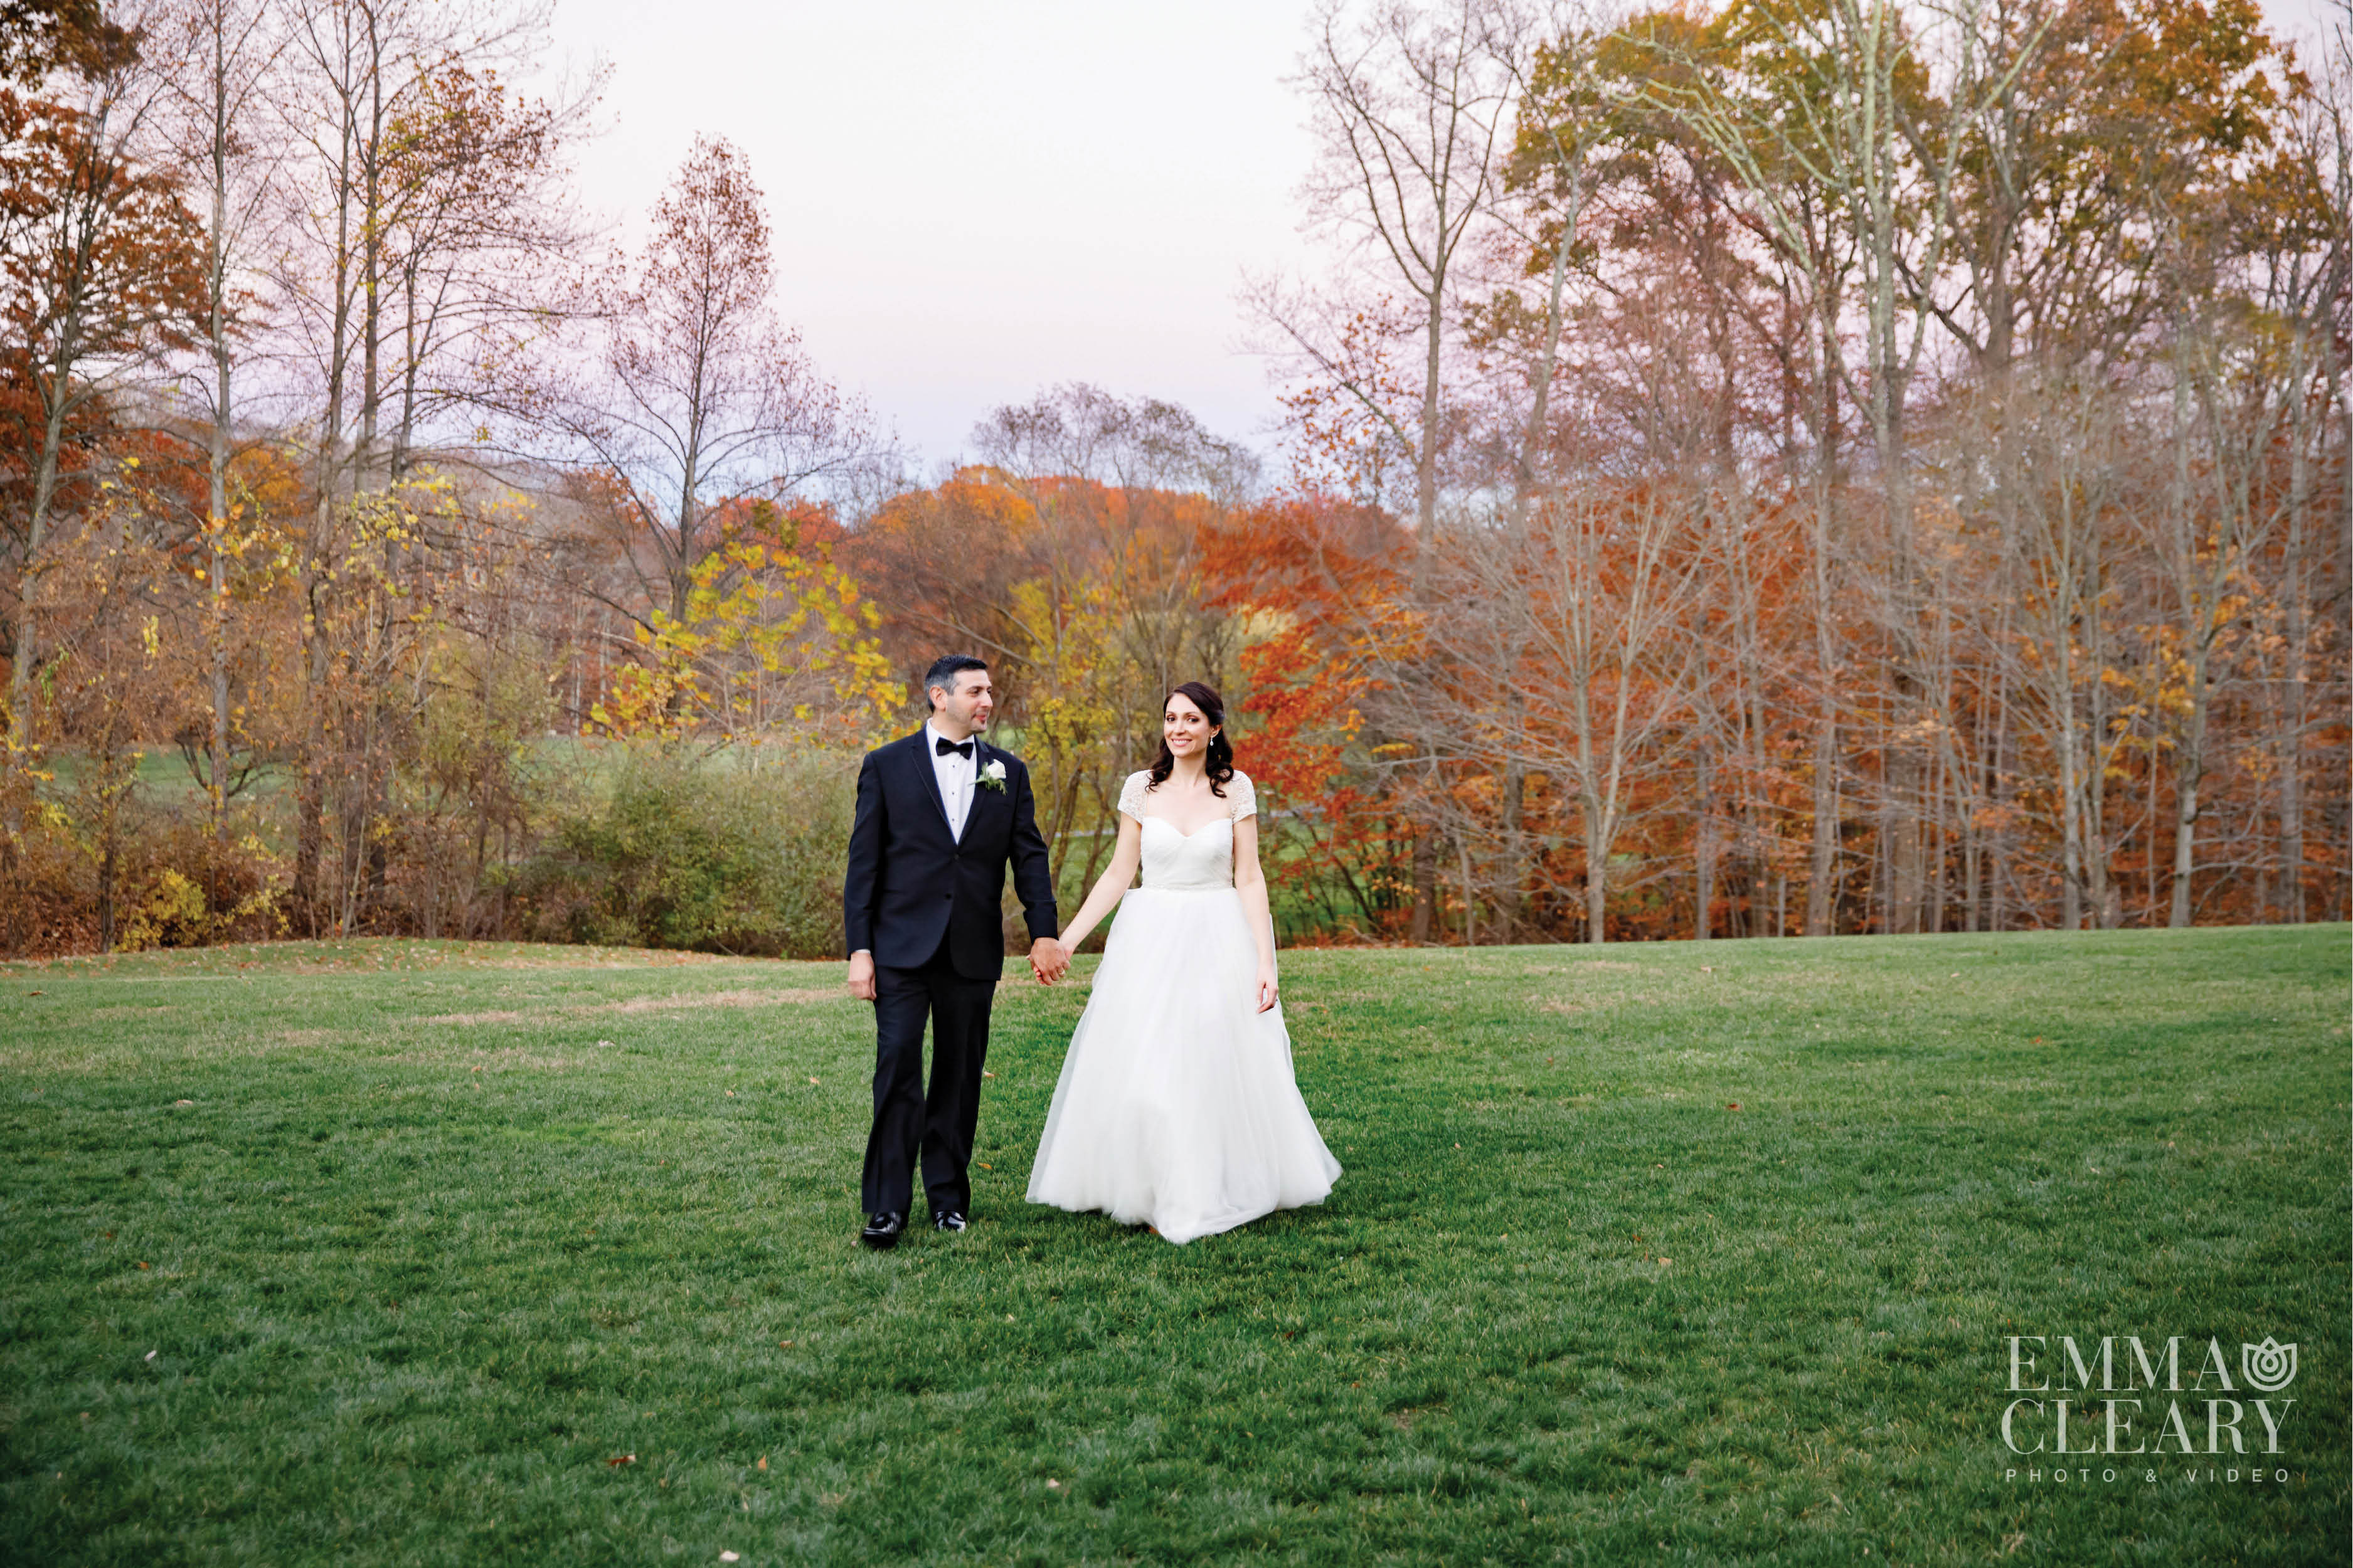 Emma_cleary_photography Hilton pearl river NY wedding28